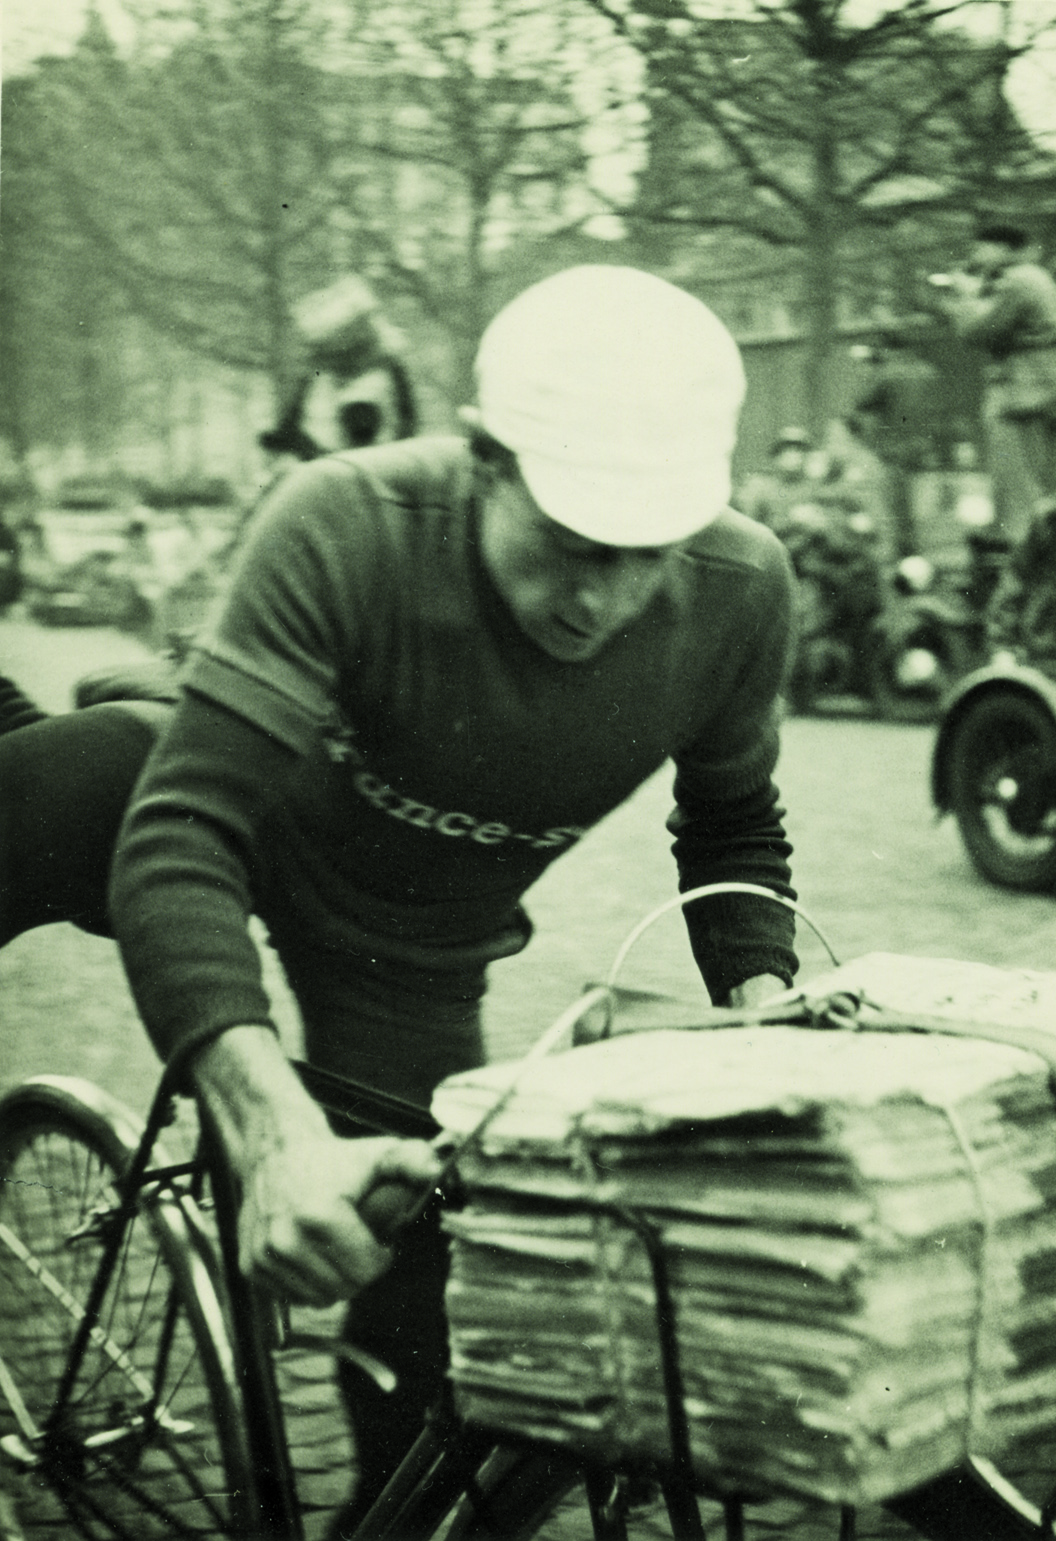 The Competition Bicycle: A Photographic History - by Jan HeineVintage Bicycle Press